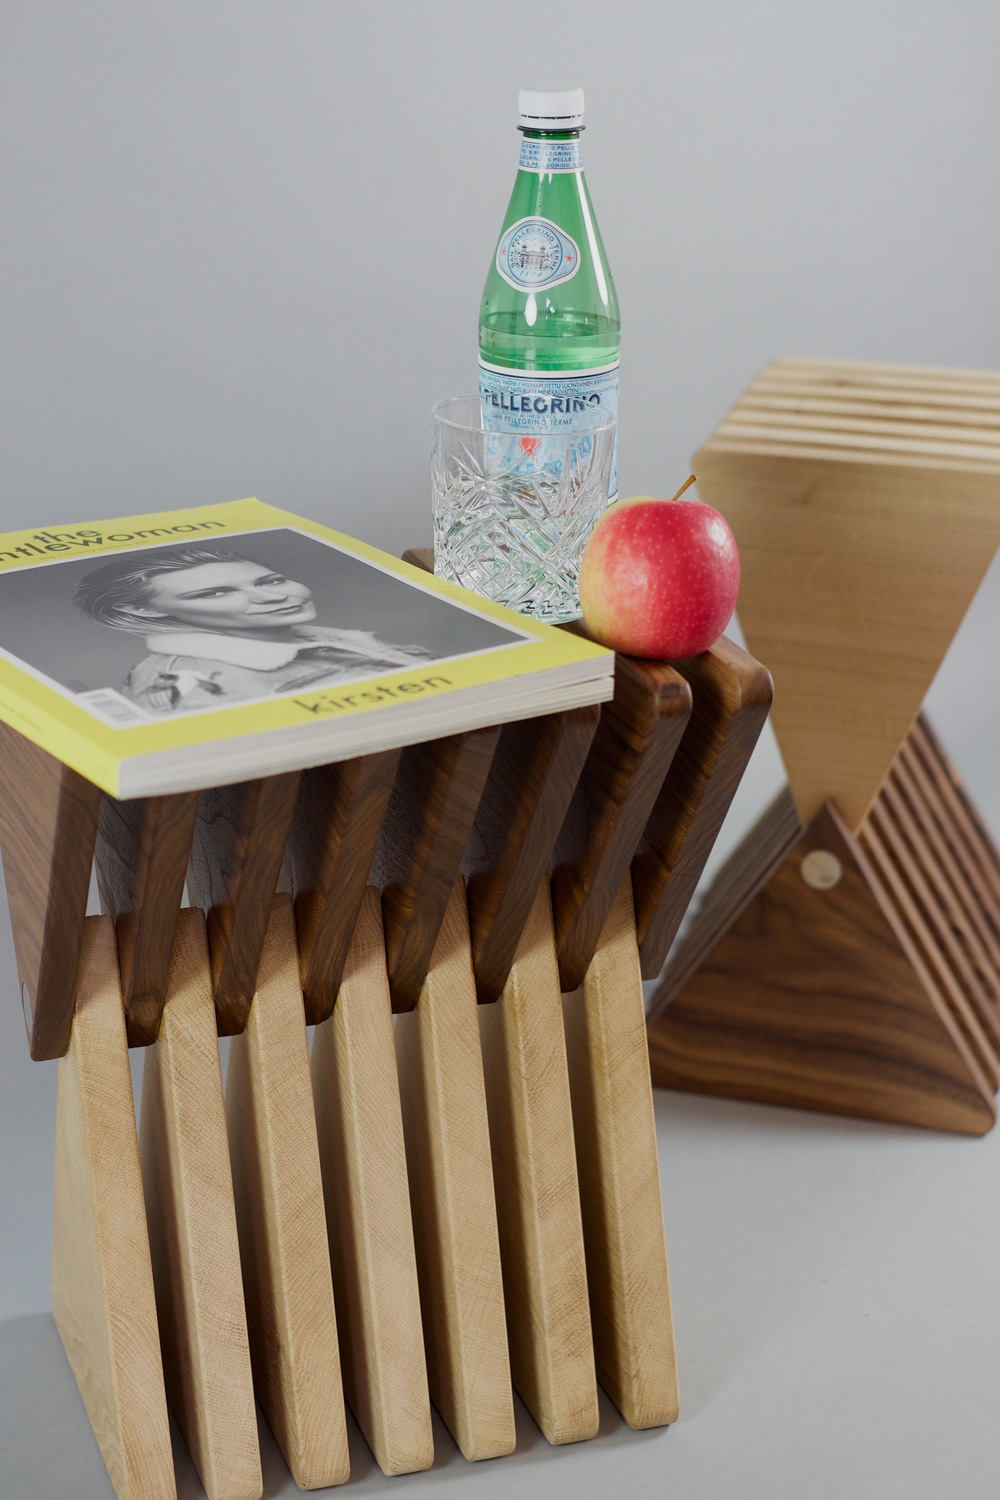 The Vinci Stool